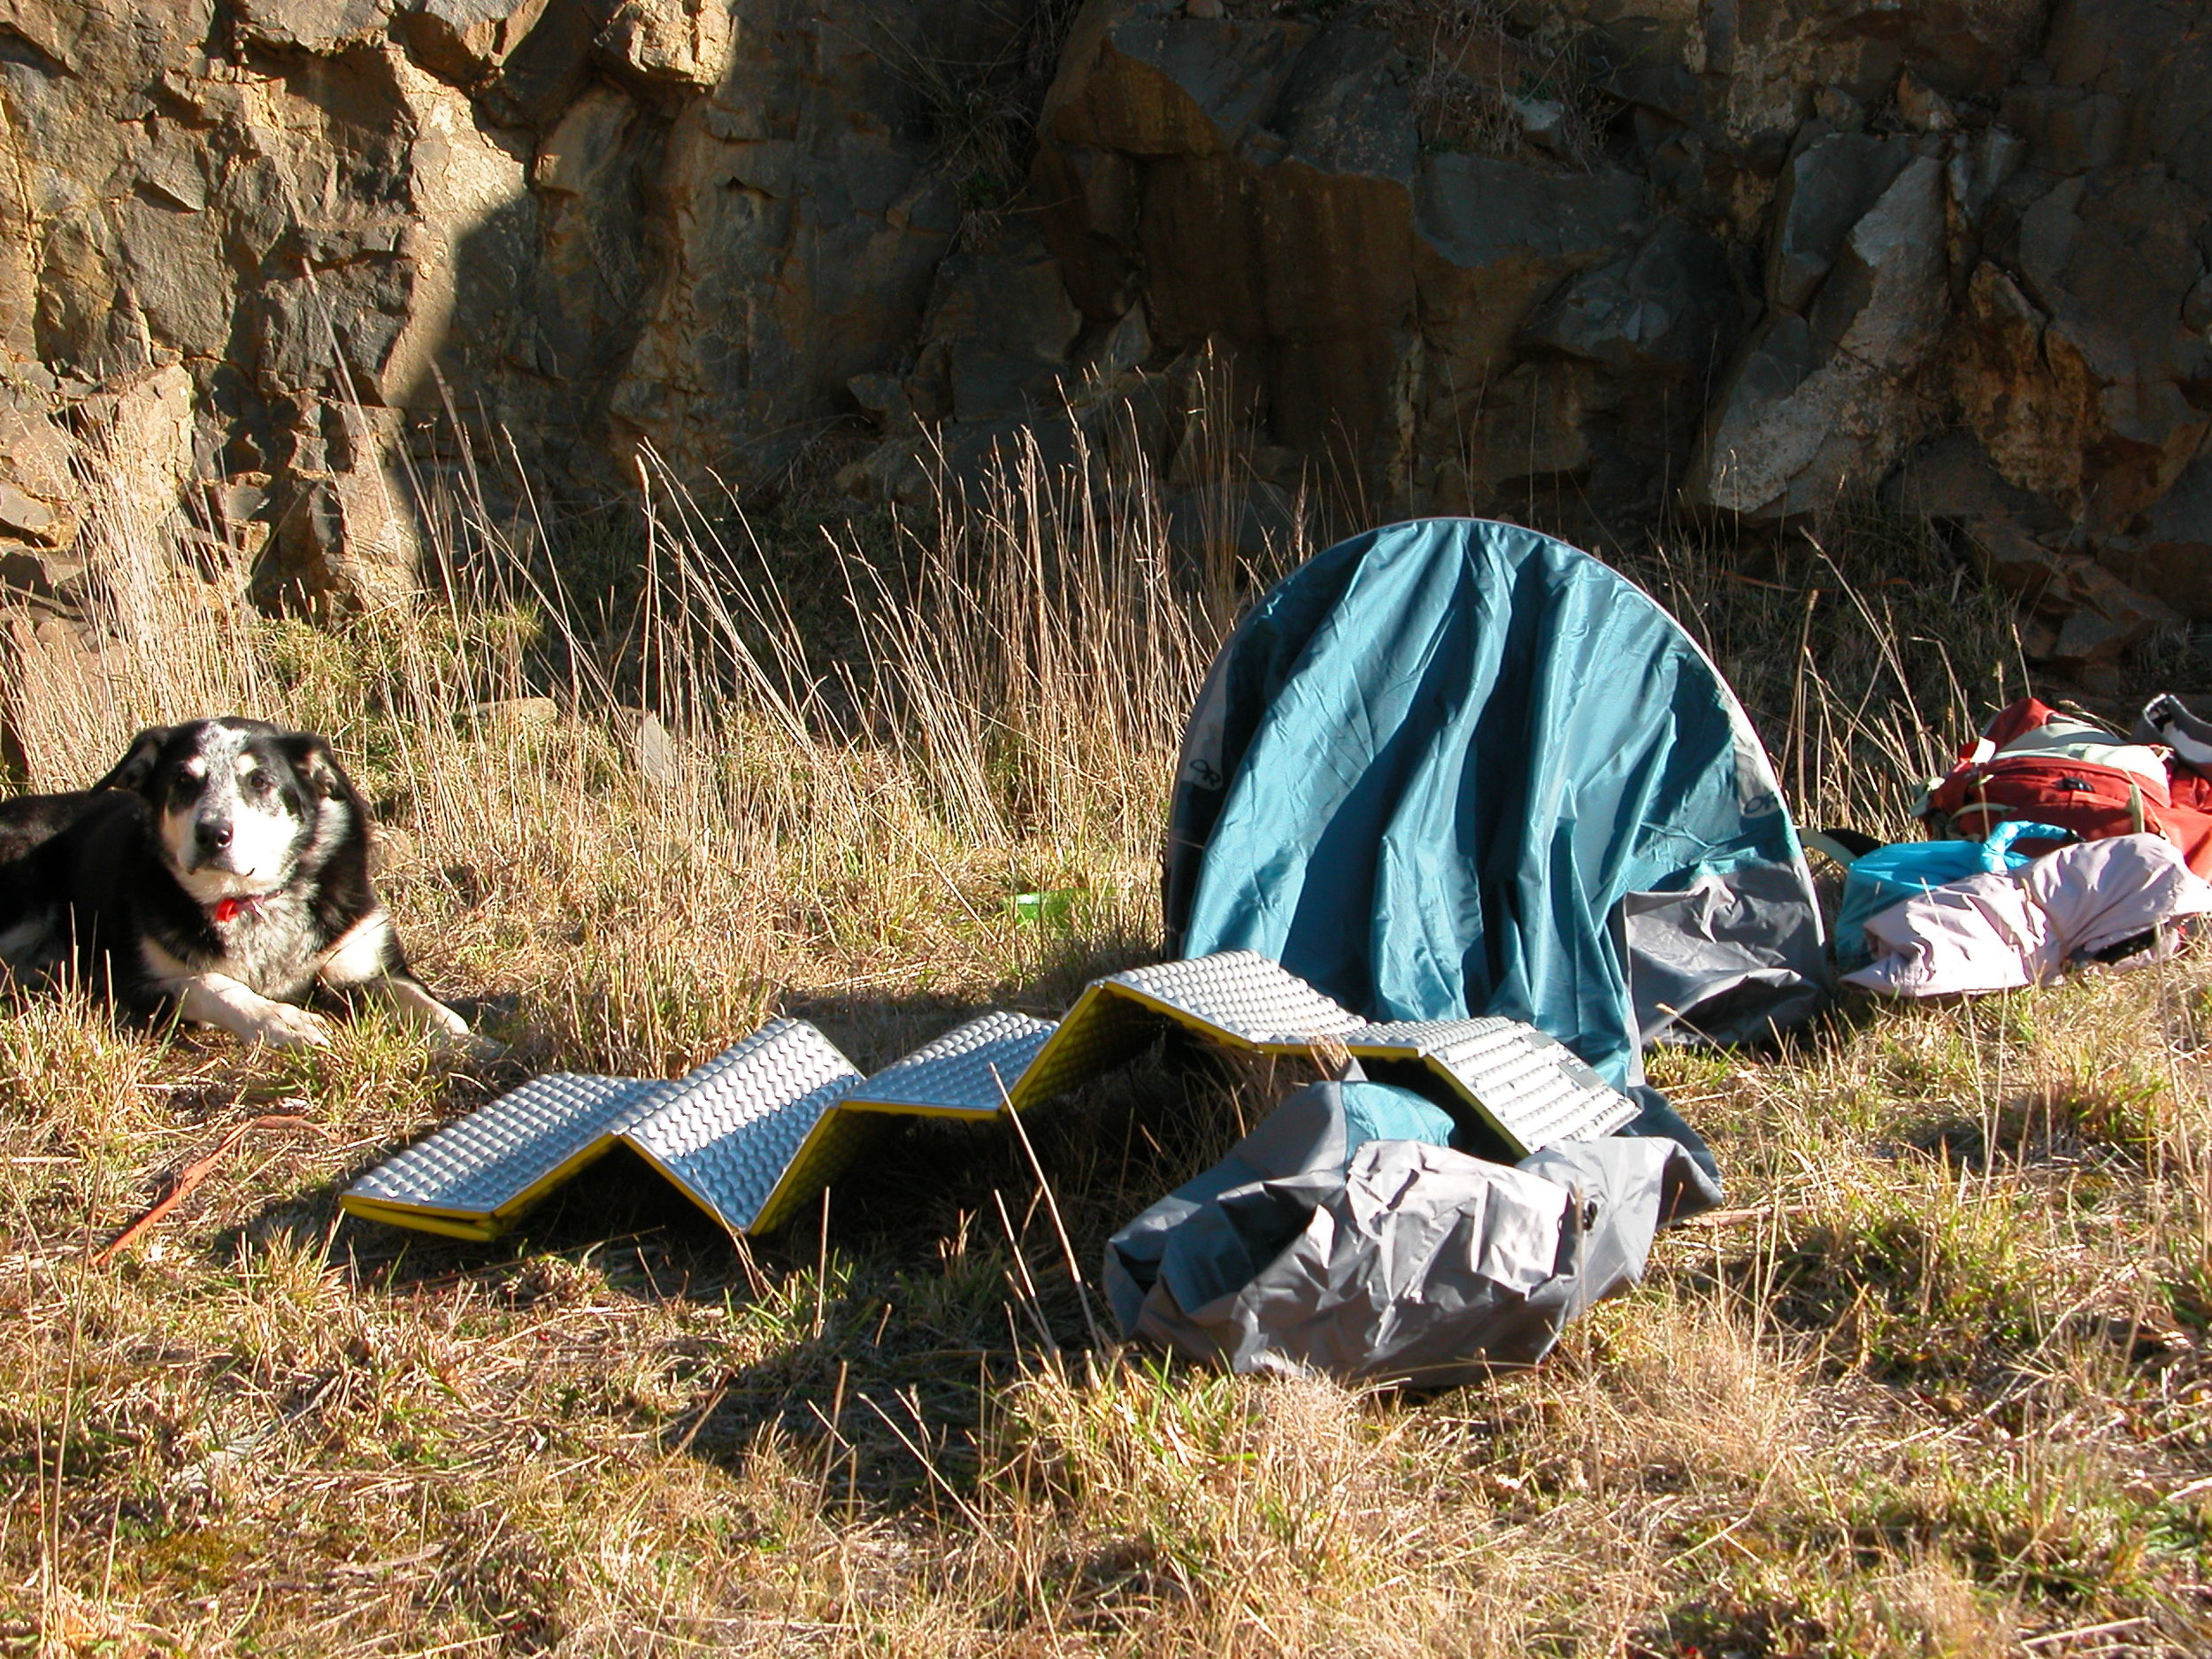 """Chance guarding the """"bivy bag"""" and the new thermal pad. We're hunkered down in the quarry, trying to stay out of the westerly gale."""